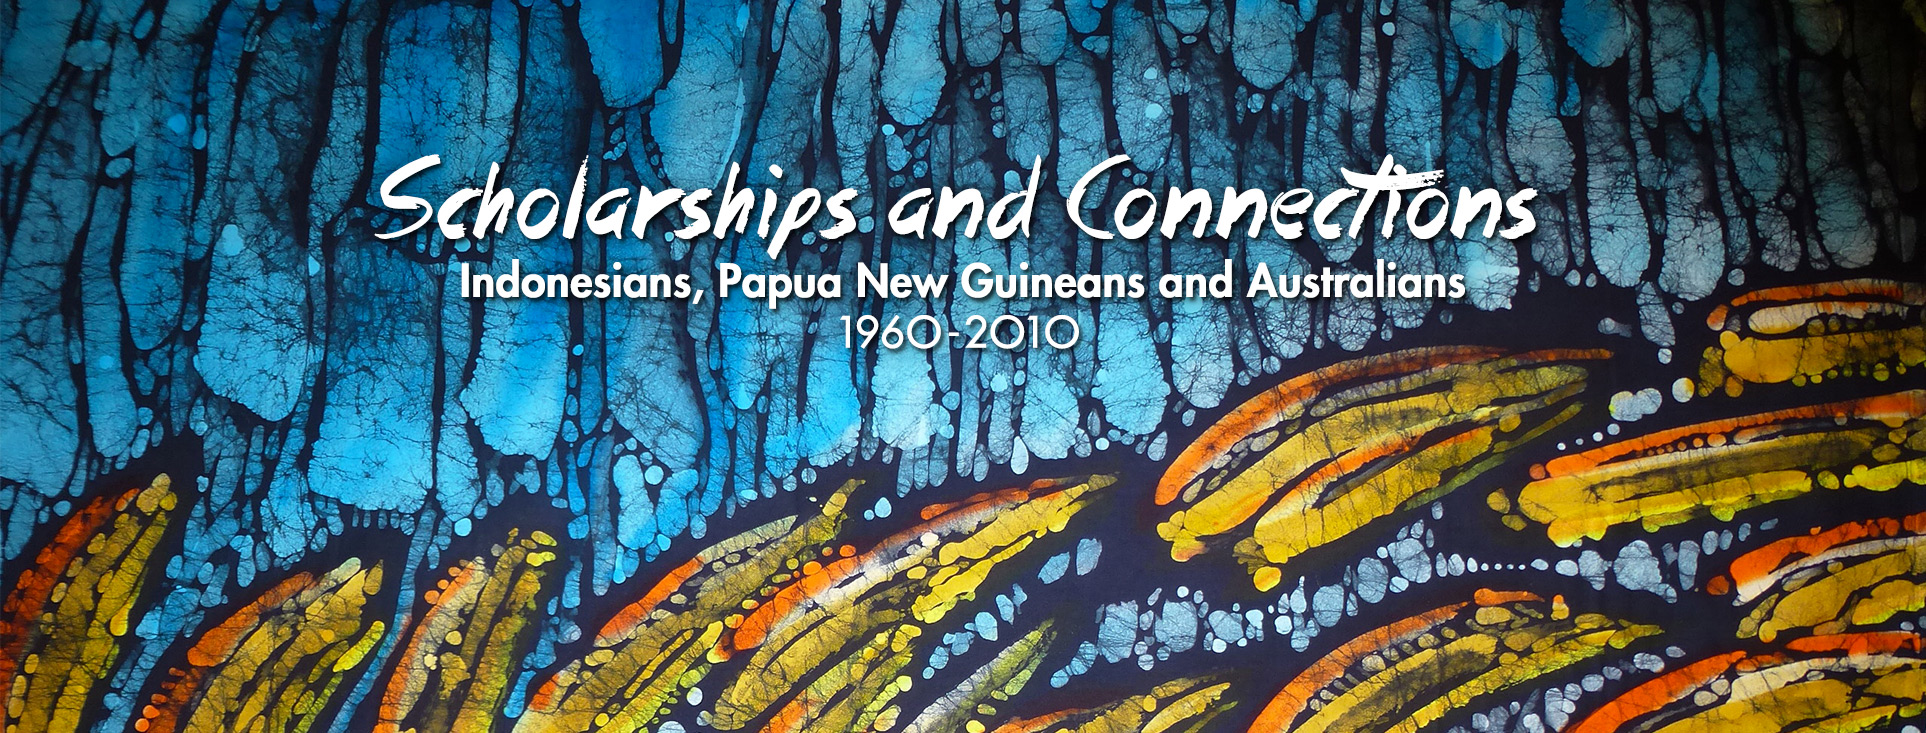 Scholarships and Connections: Indonesians, Papua New Guineans and Australians, 1960-2010